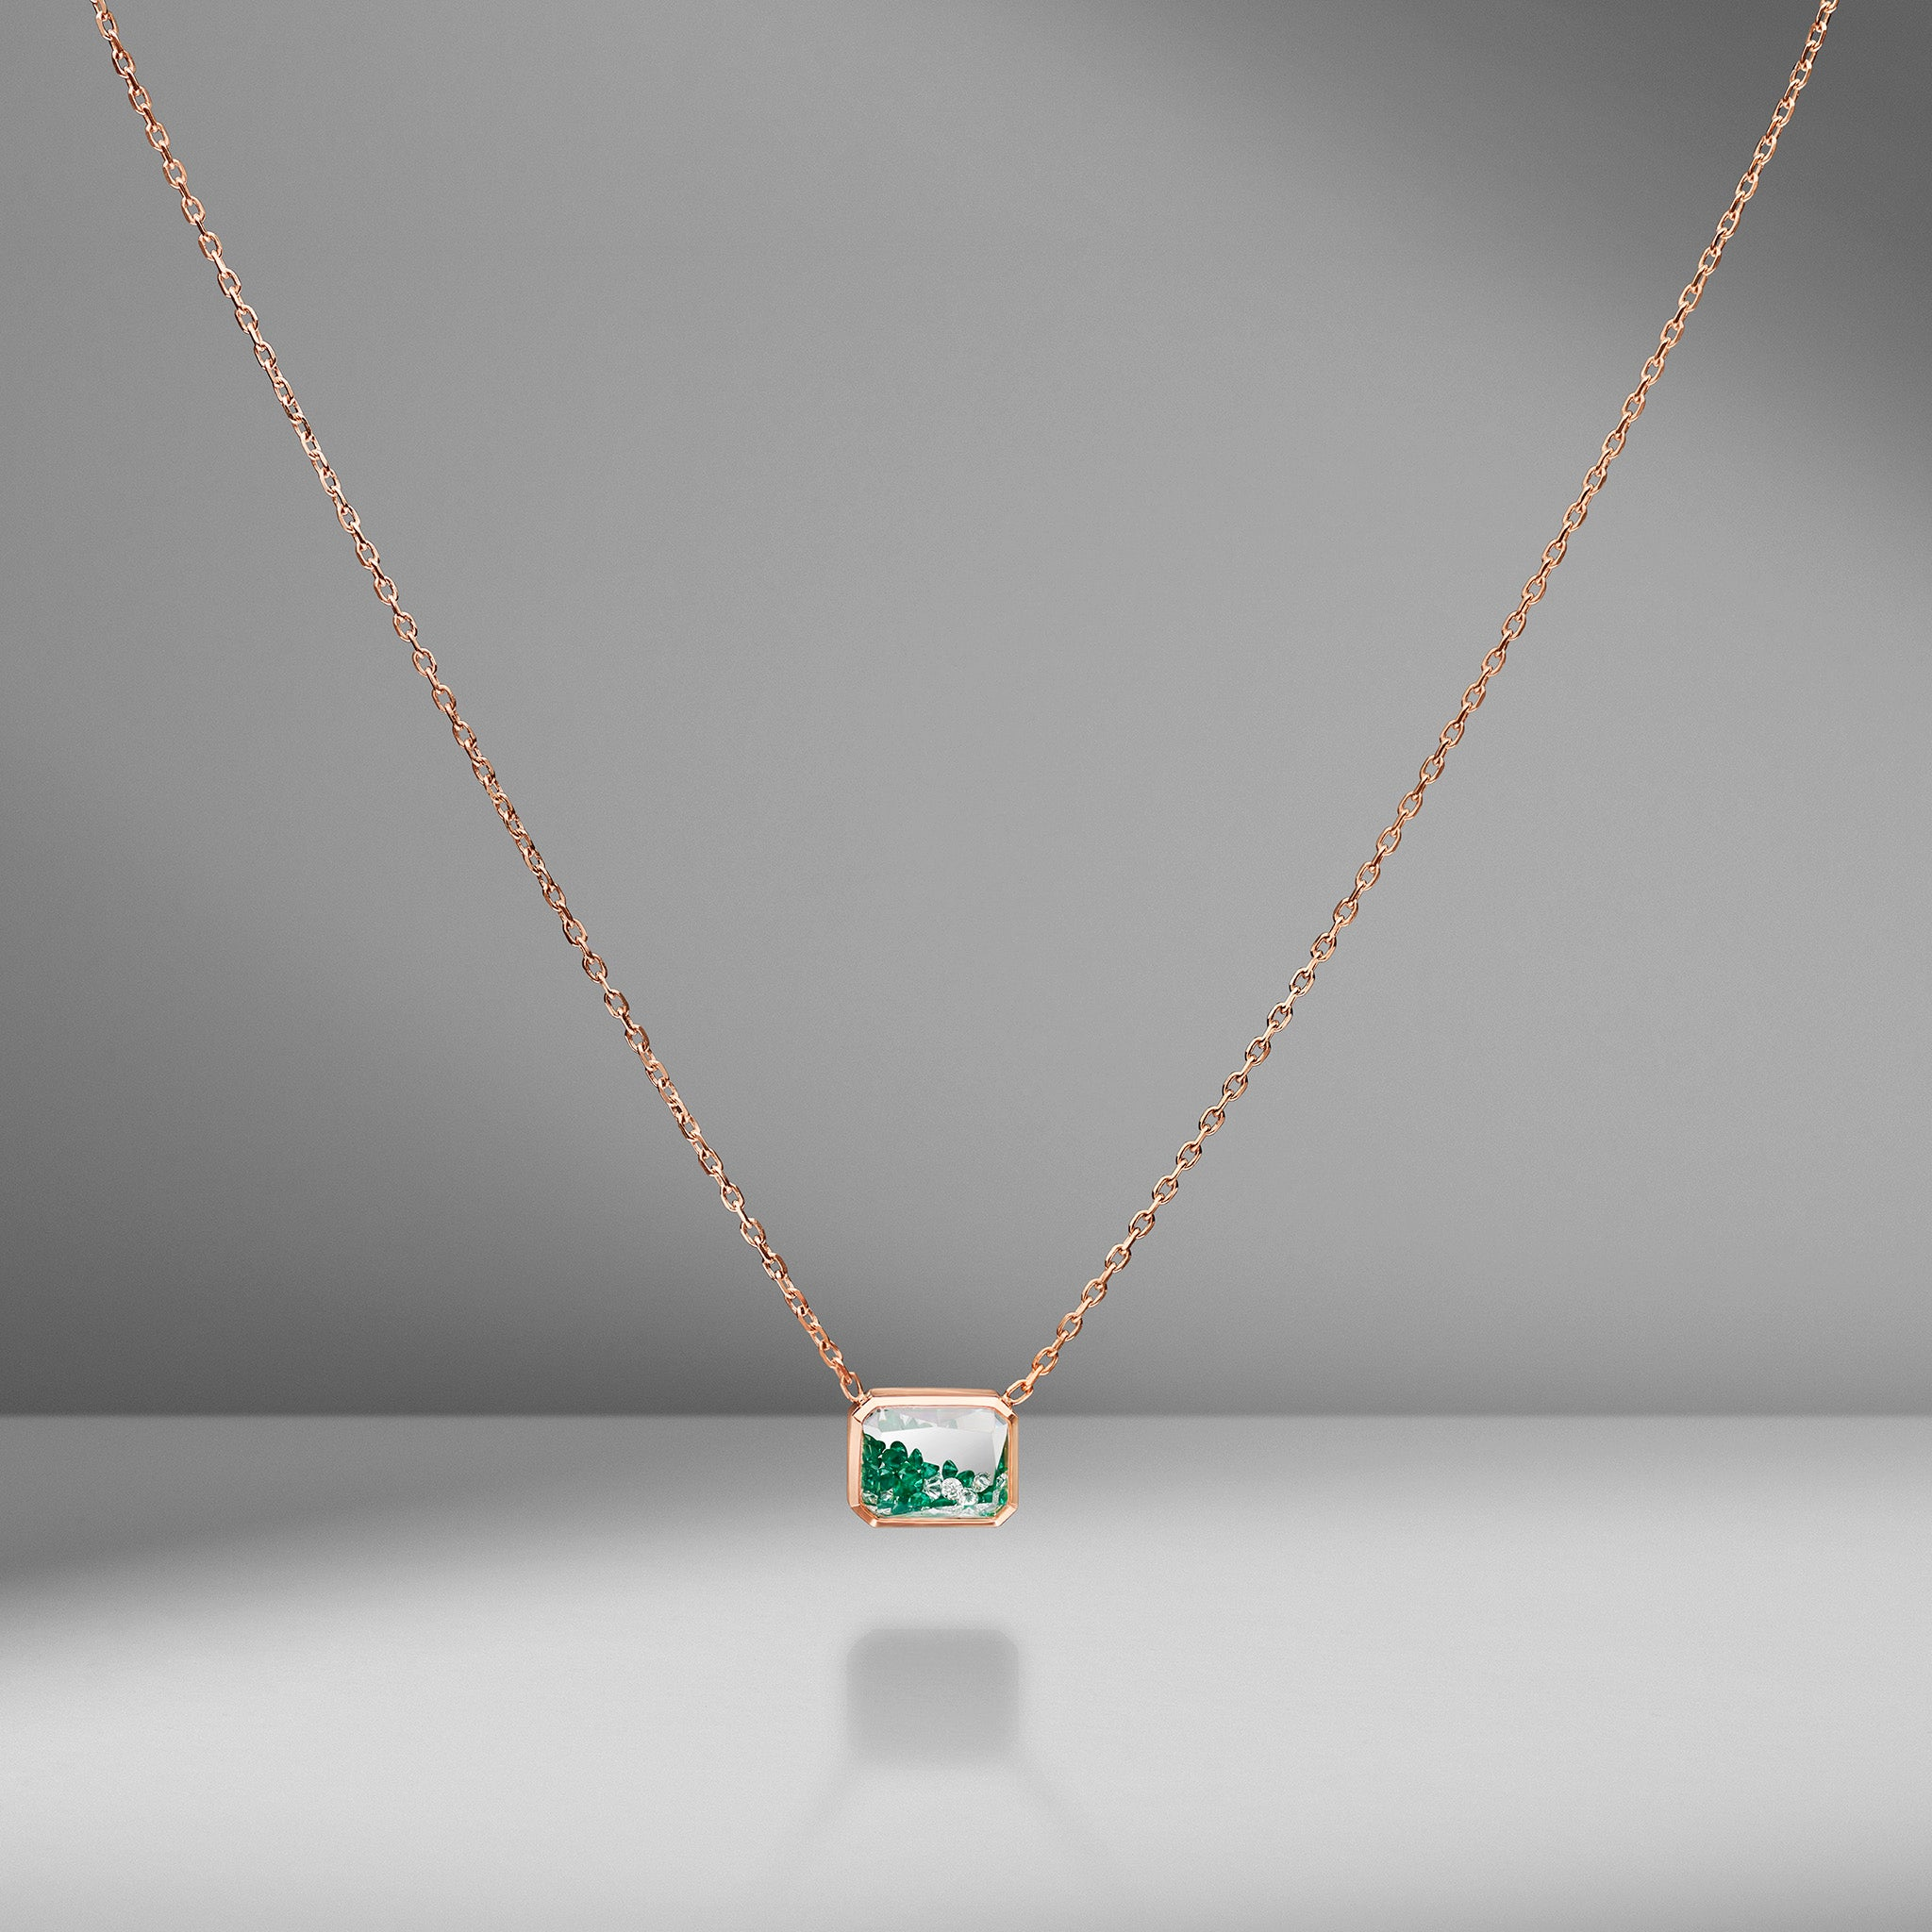 Emerald Shaker Pendant Necklace